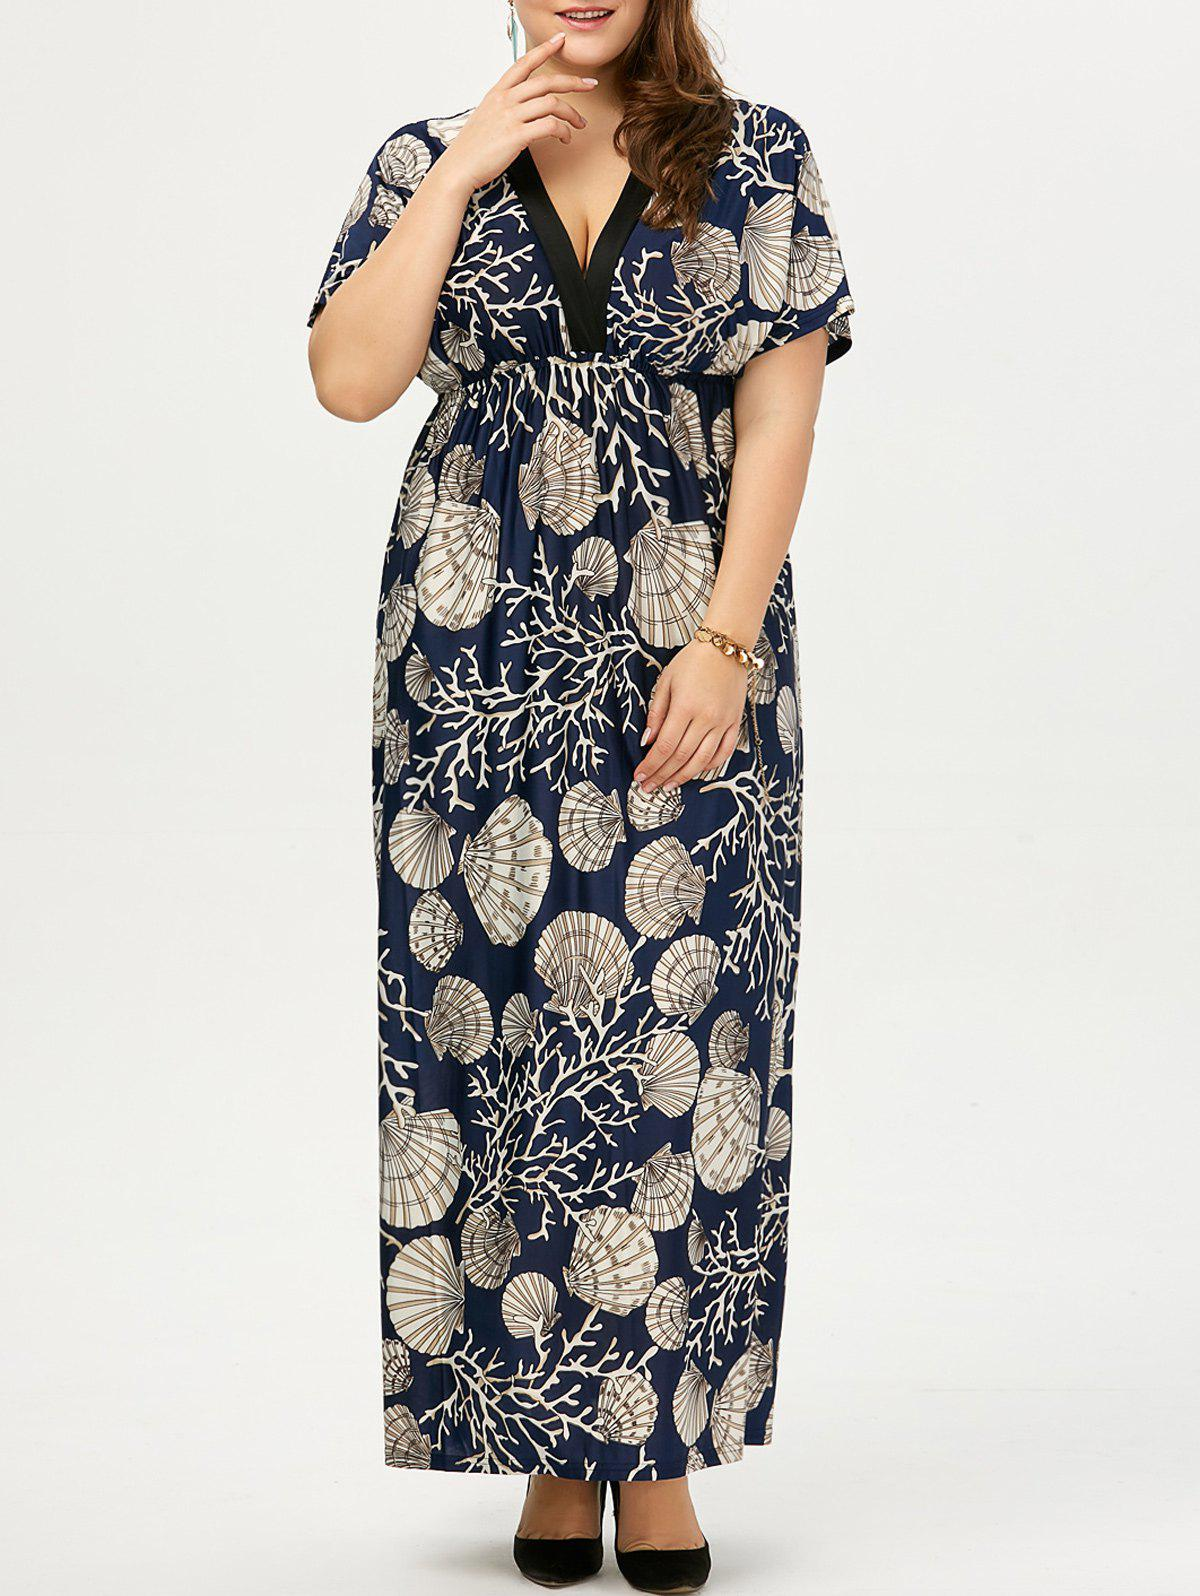 Plus Size Drawstring Dress Floral Maxi - Bleu Violet 5XL